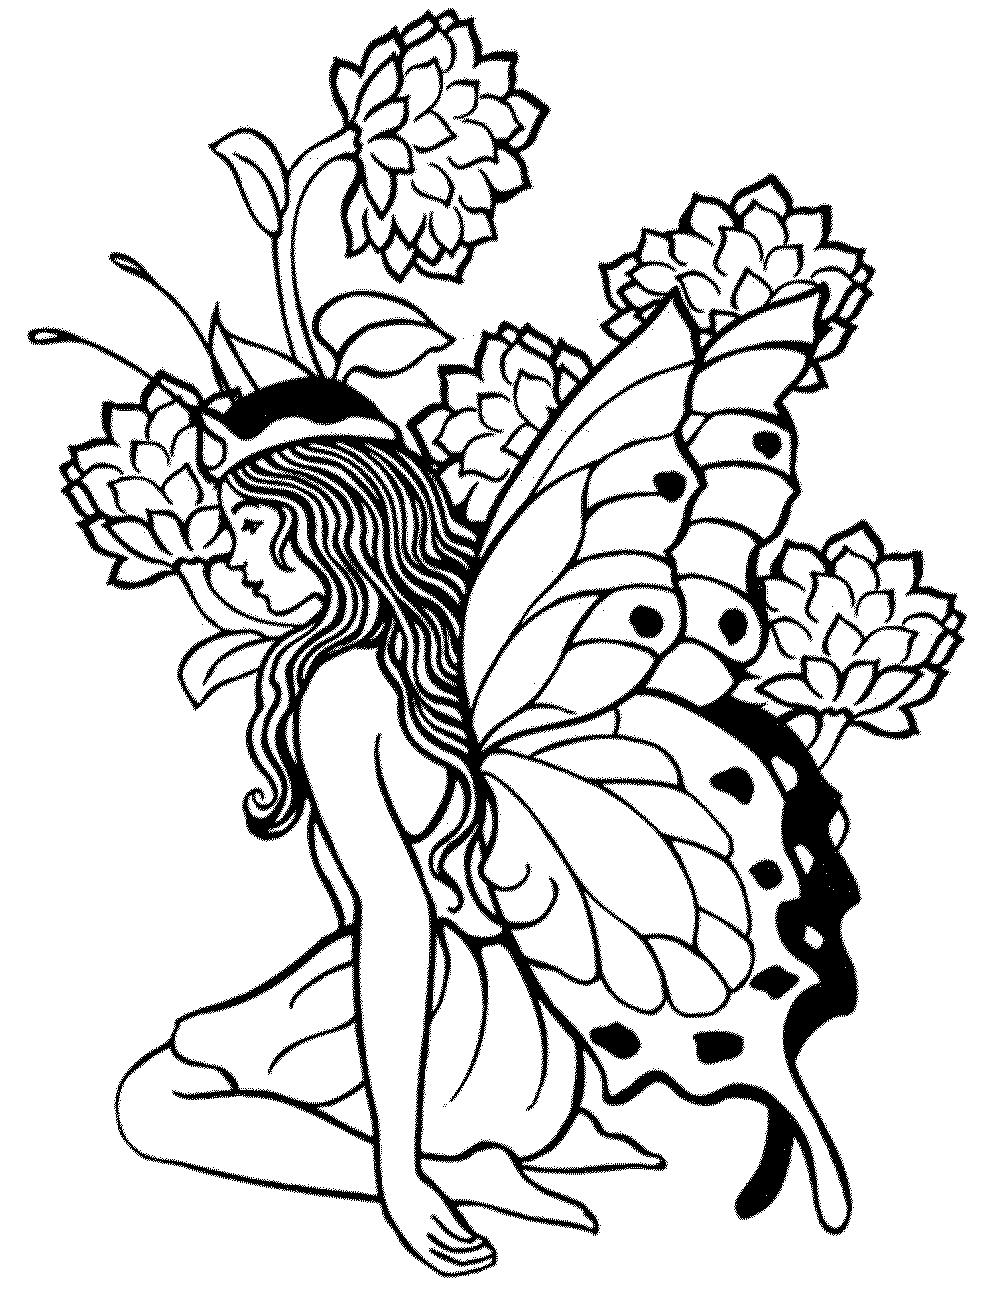 Detailed Fantasy Coloring Pages At Getdrawings Com Free For